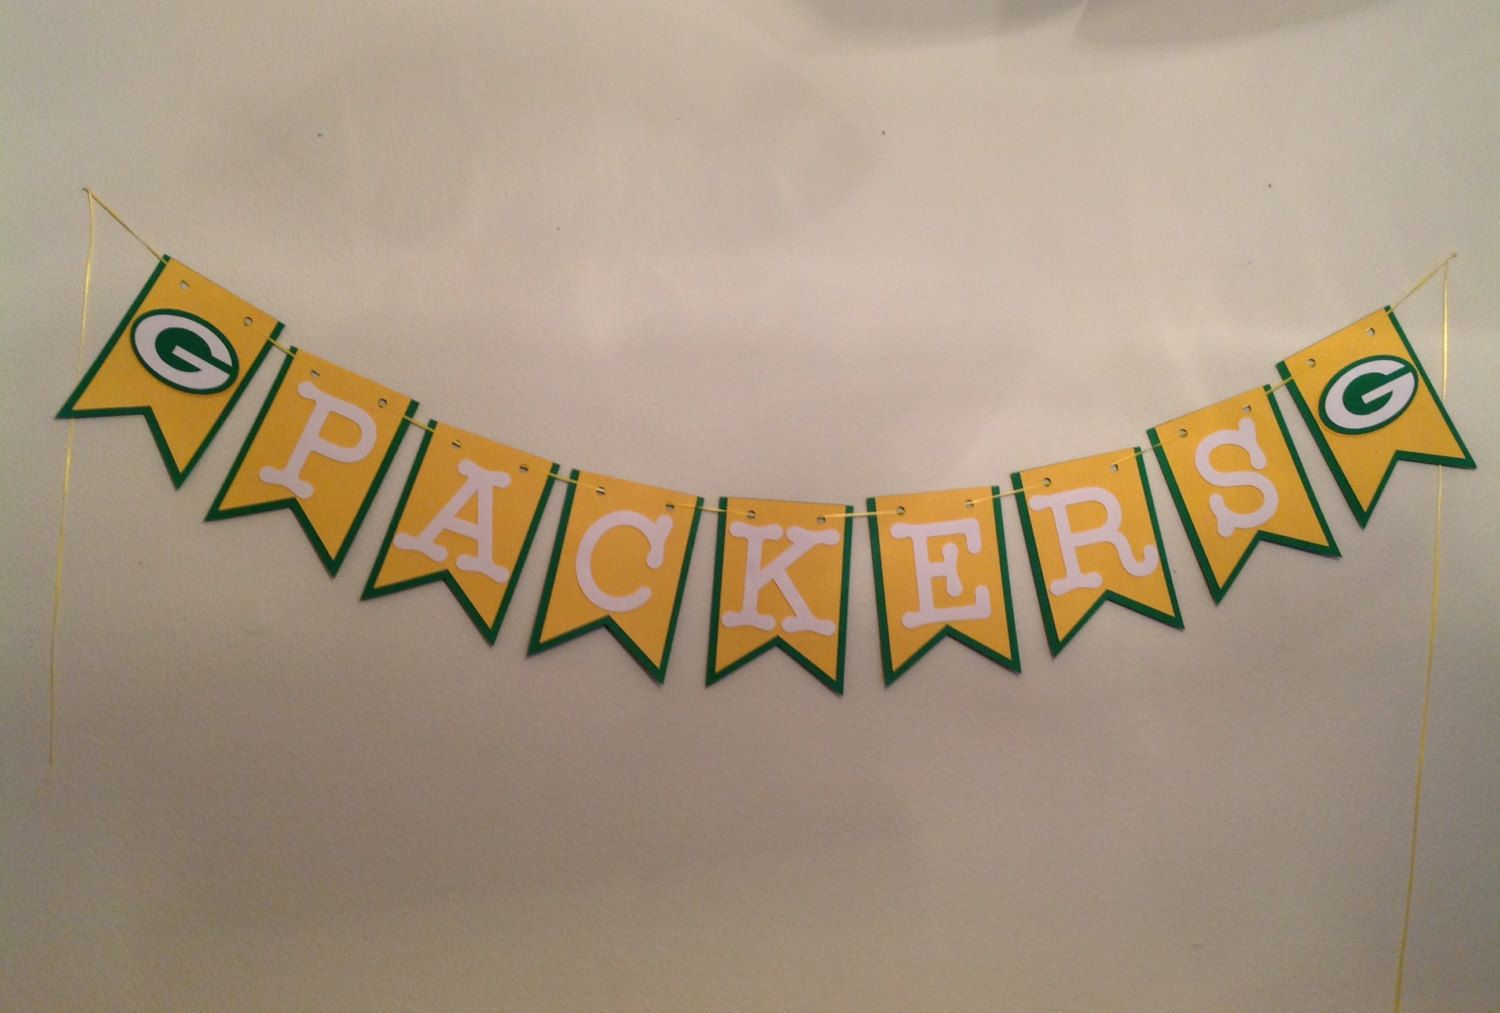 Nfl Green Bay Packers Banner Cardstock Paper Birthday Wedding Shower Inspired Green Yellow W Green Bay Packers Decor Baby Shower Party Decorations Party Banner